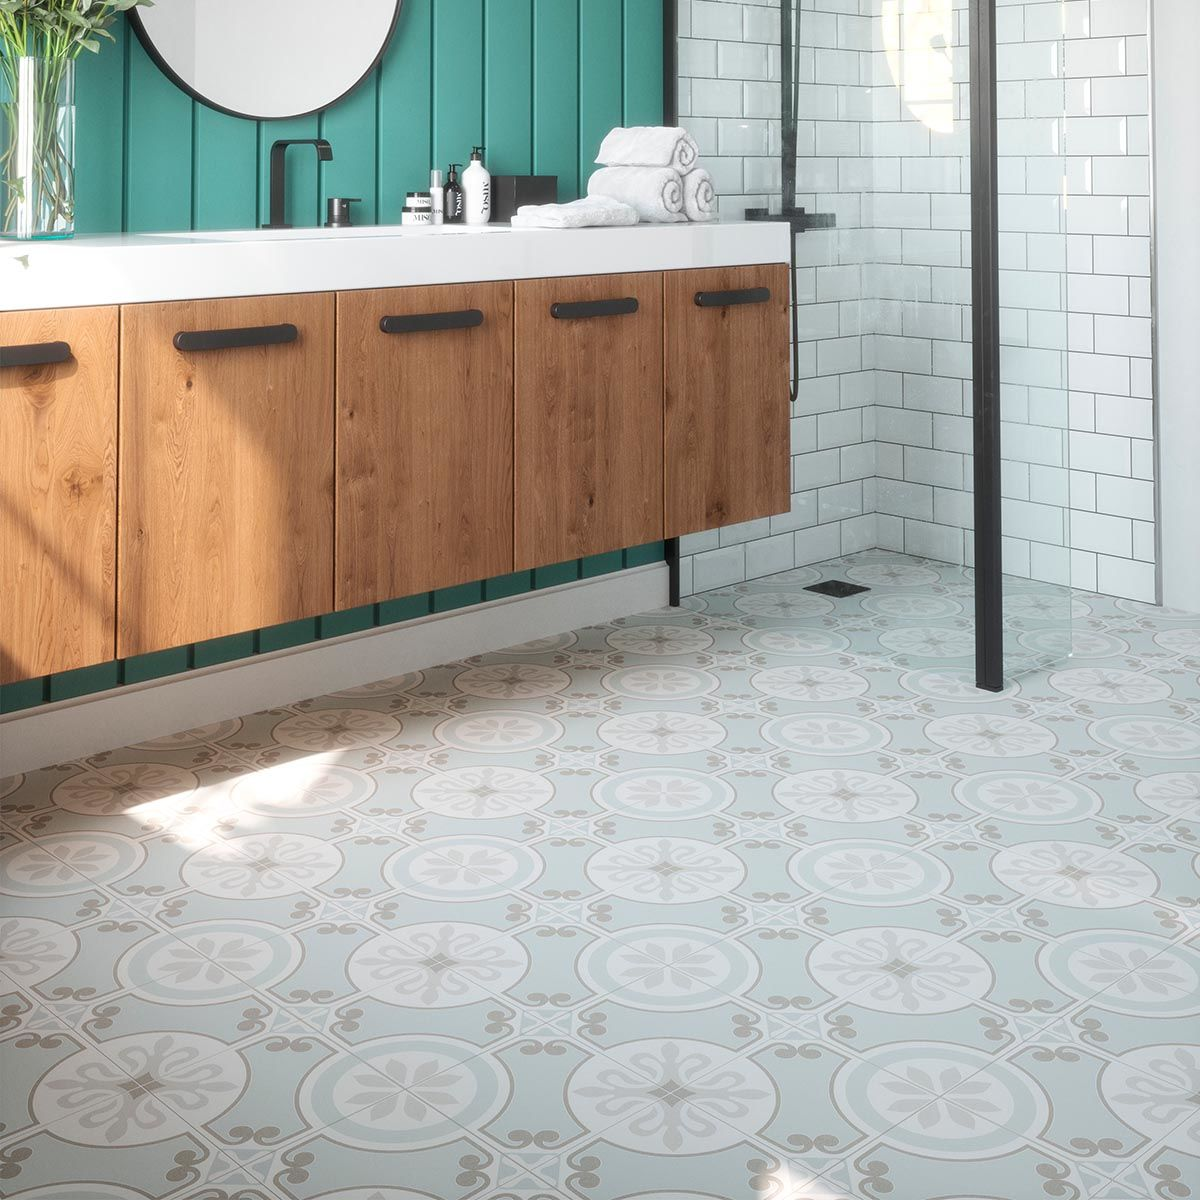 Costola Tiles from Latino Ceramics in Guiseley in Leeds